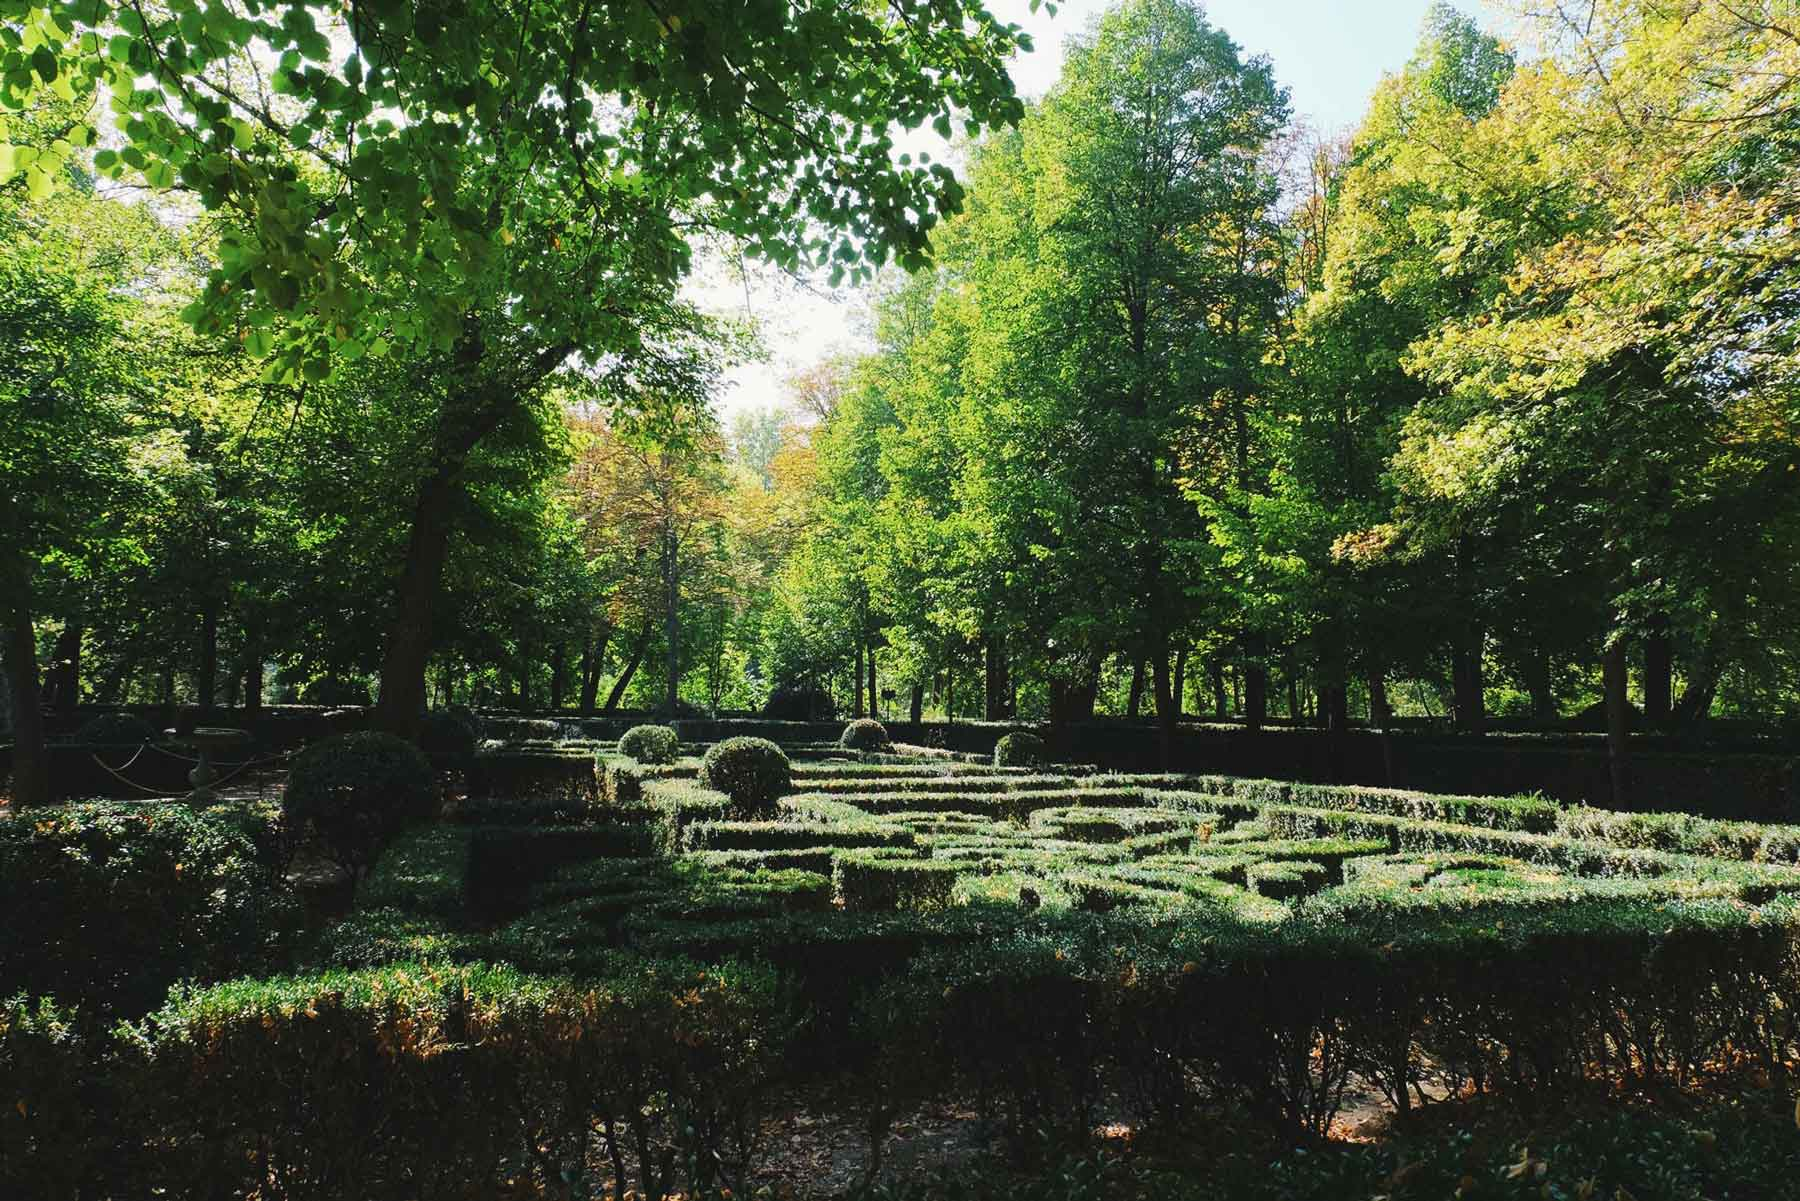 Uno de los laberintos del jardín. / One of the labyrinths of the garden. They were inspired by Versailles.